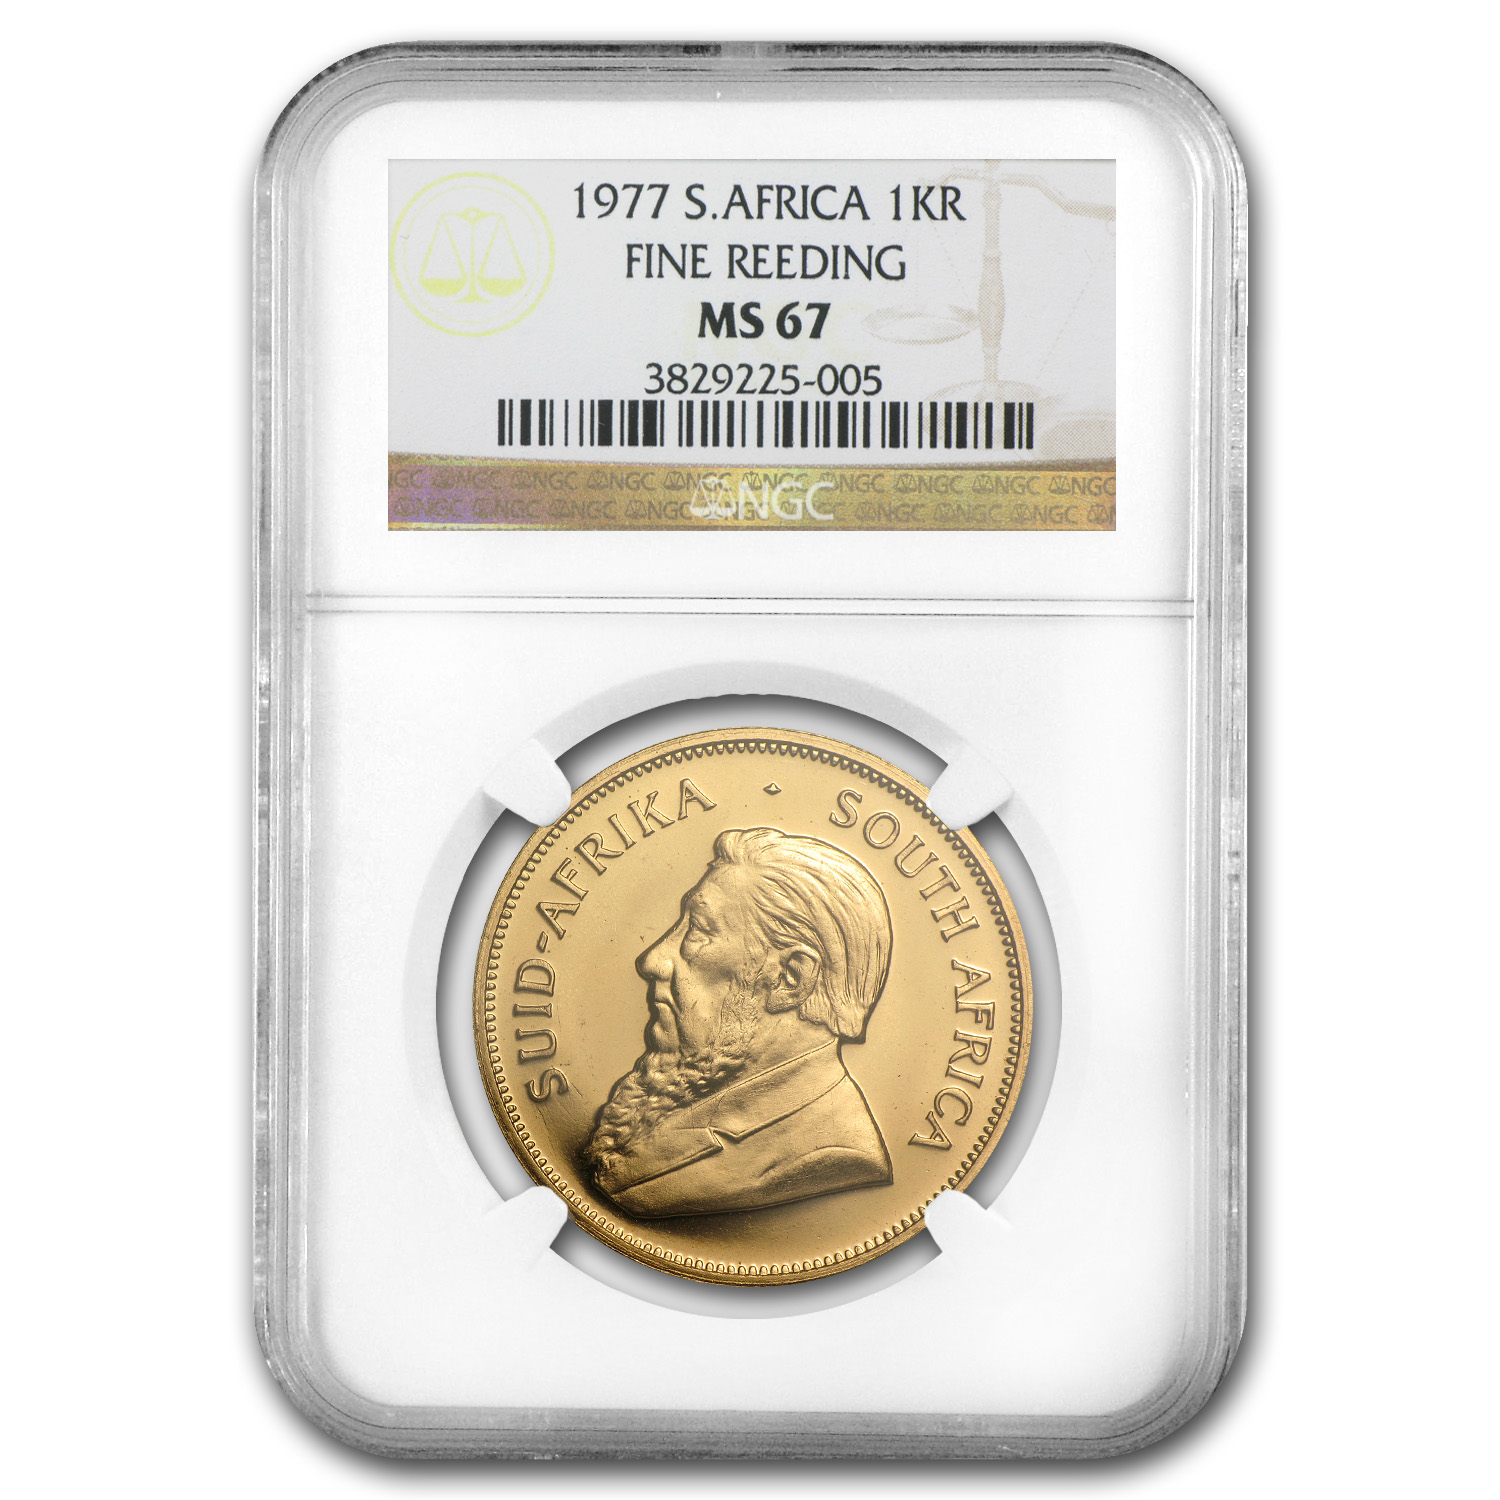 1977 1 oz Gold South African Krugerrand MS-67 NGC (Fine Reeding)